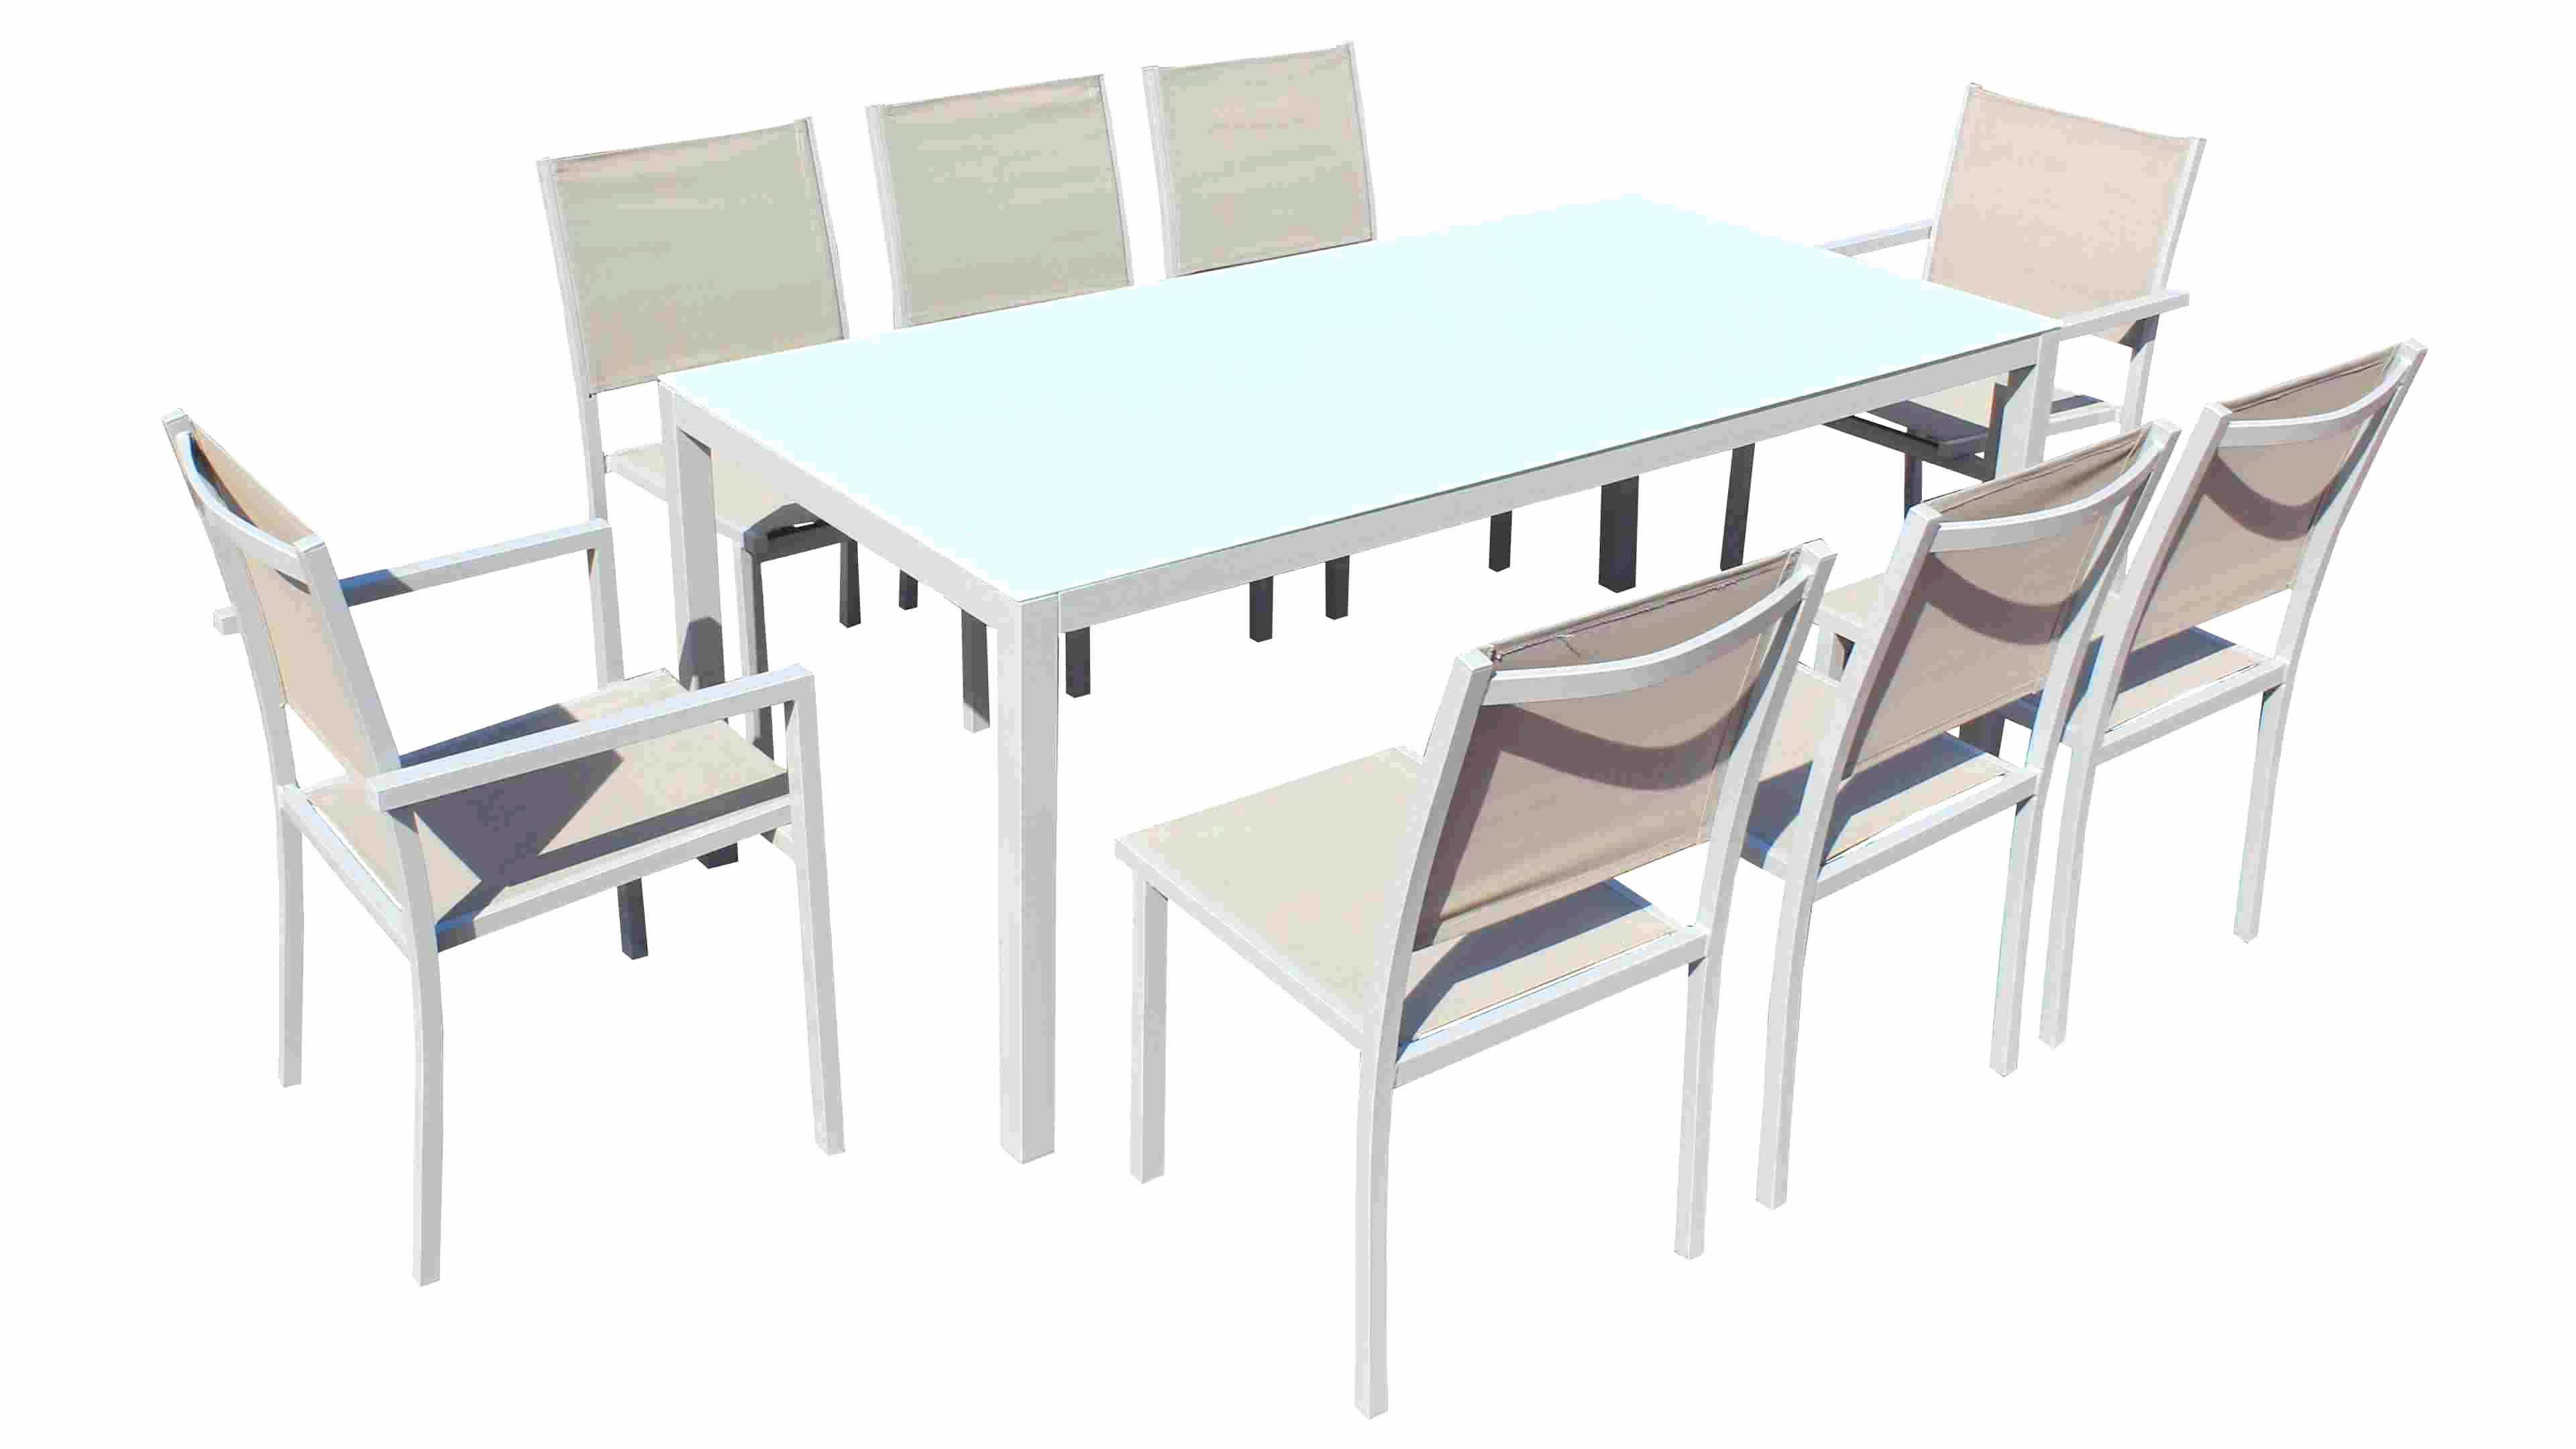 Table Salle A Manger Extensible Fly Frais Table Manger concernant Table Salle A Manger Extensible Fly